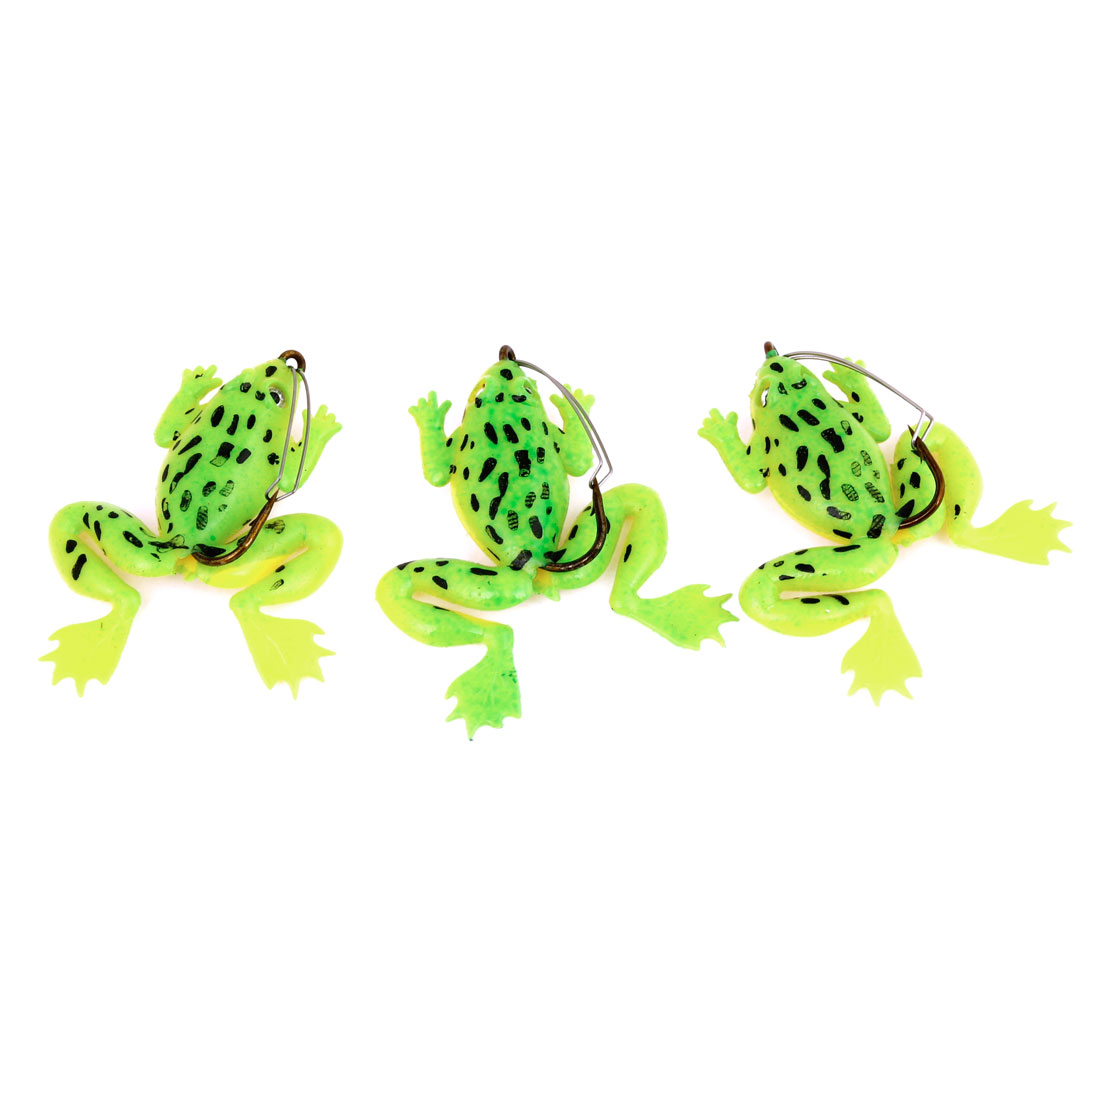 Fishing Lure Frog Design Simulation Noctilucent Swimbait Tool Green 3 Pcs w Hook